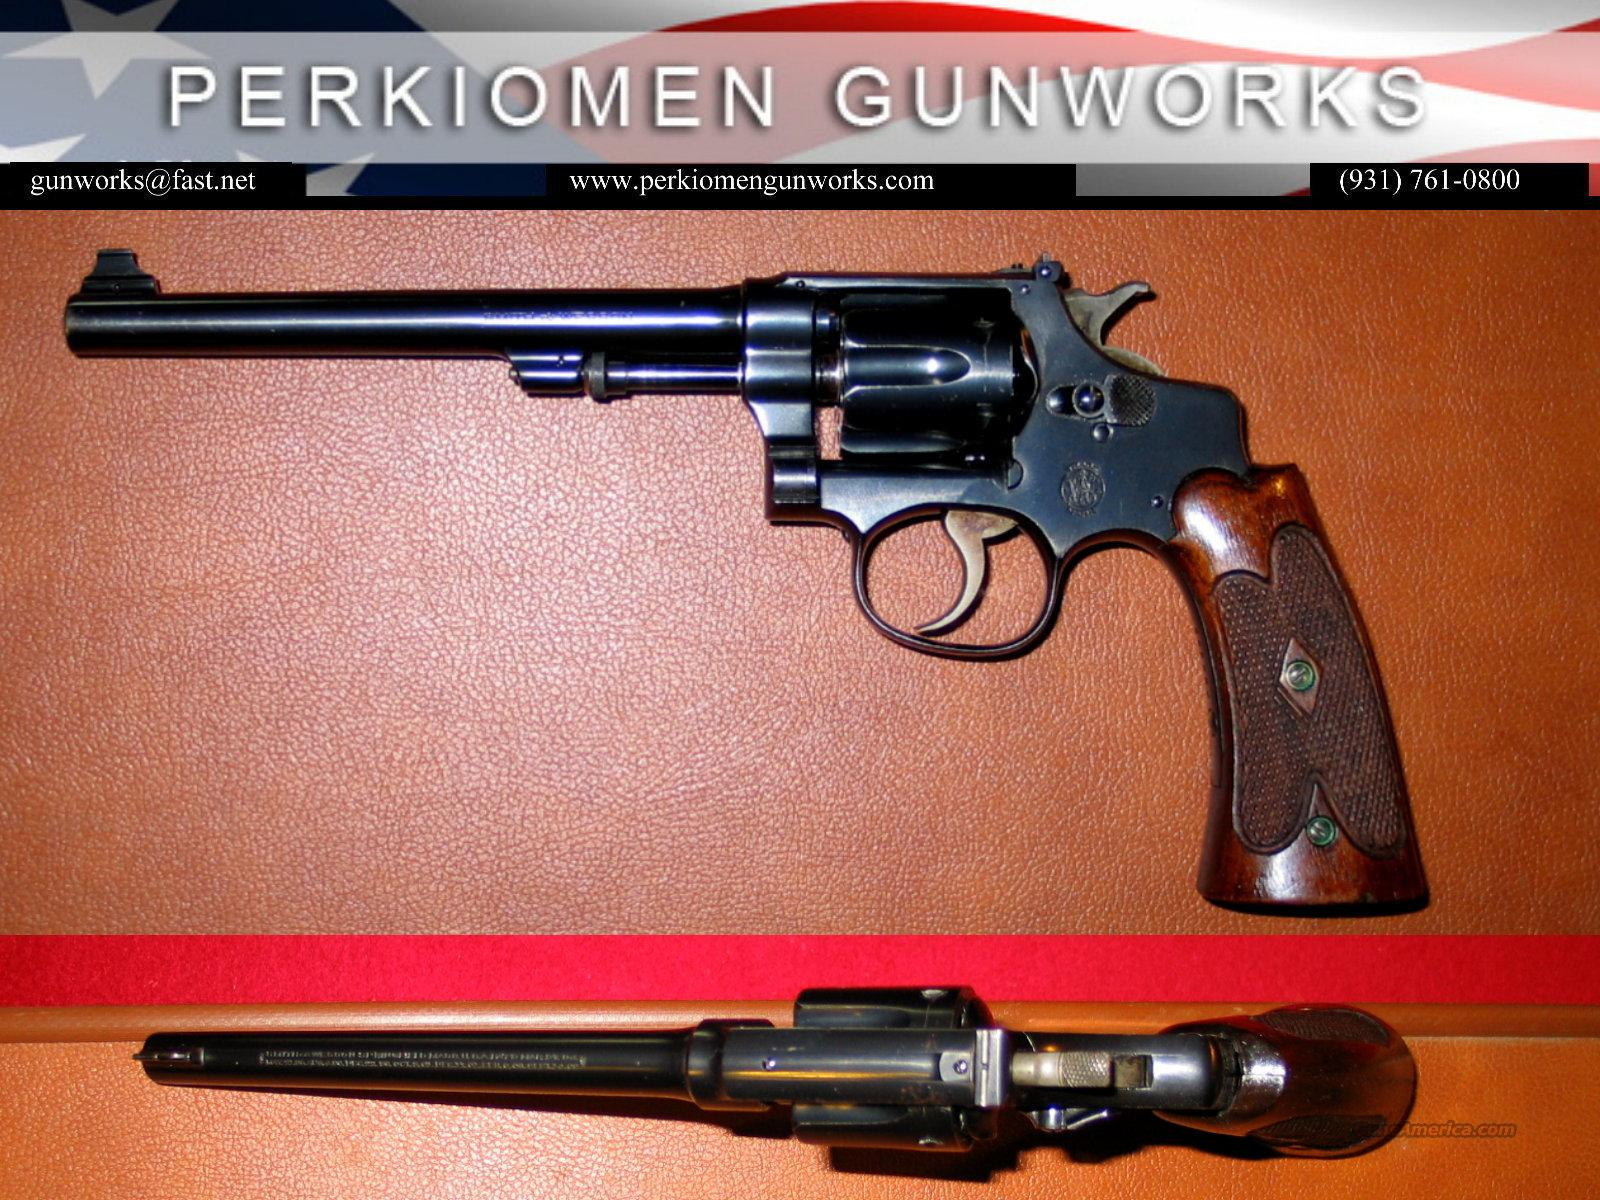 .22/32 Hand Ejector / Bekeart Model, .22LR - Excellent!  Guns > Pistols > Smith & Wesson Revolvers > Pre-1945